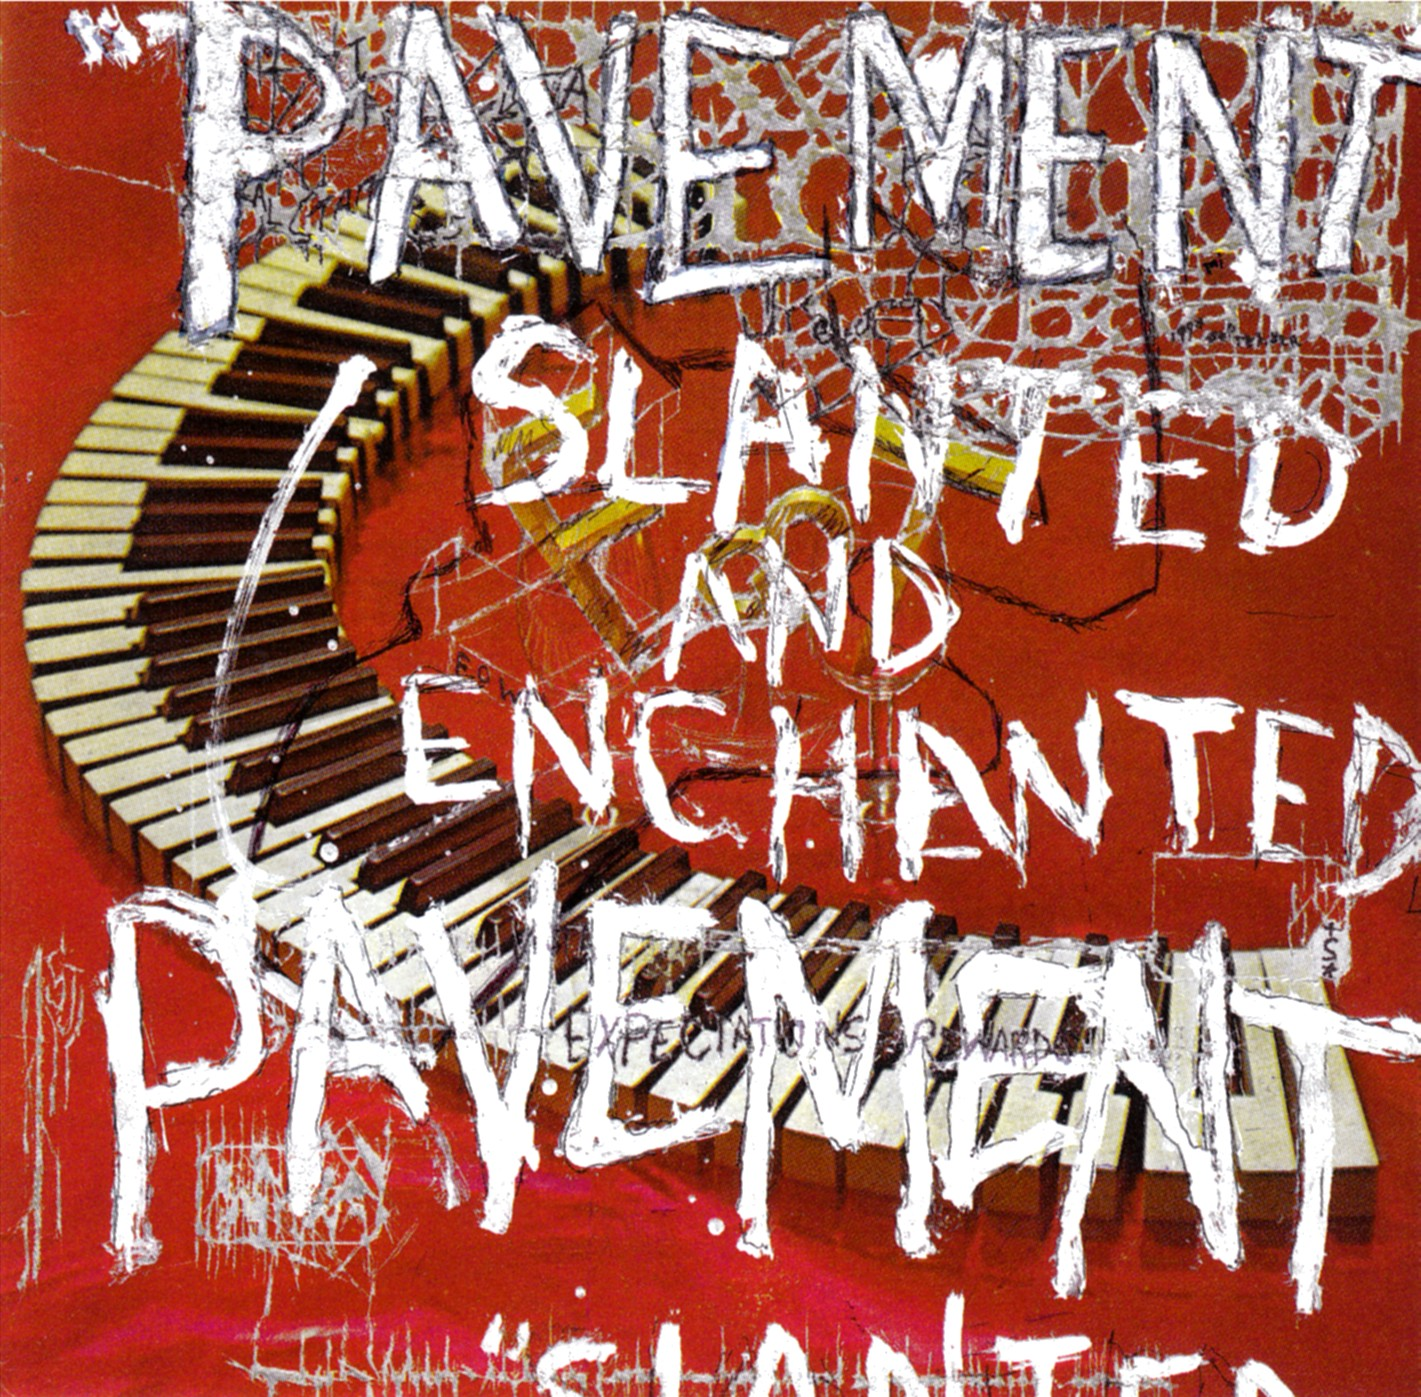 Pavement Slanted and Enchanted review